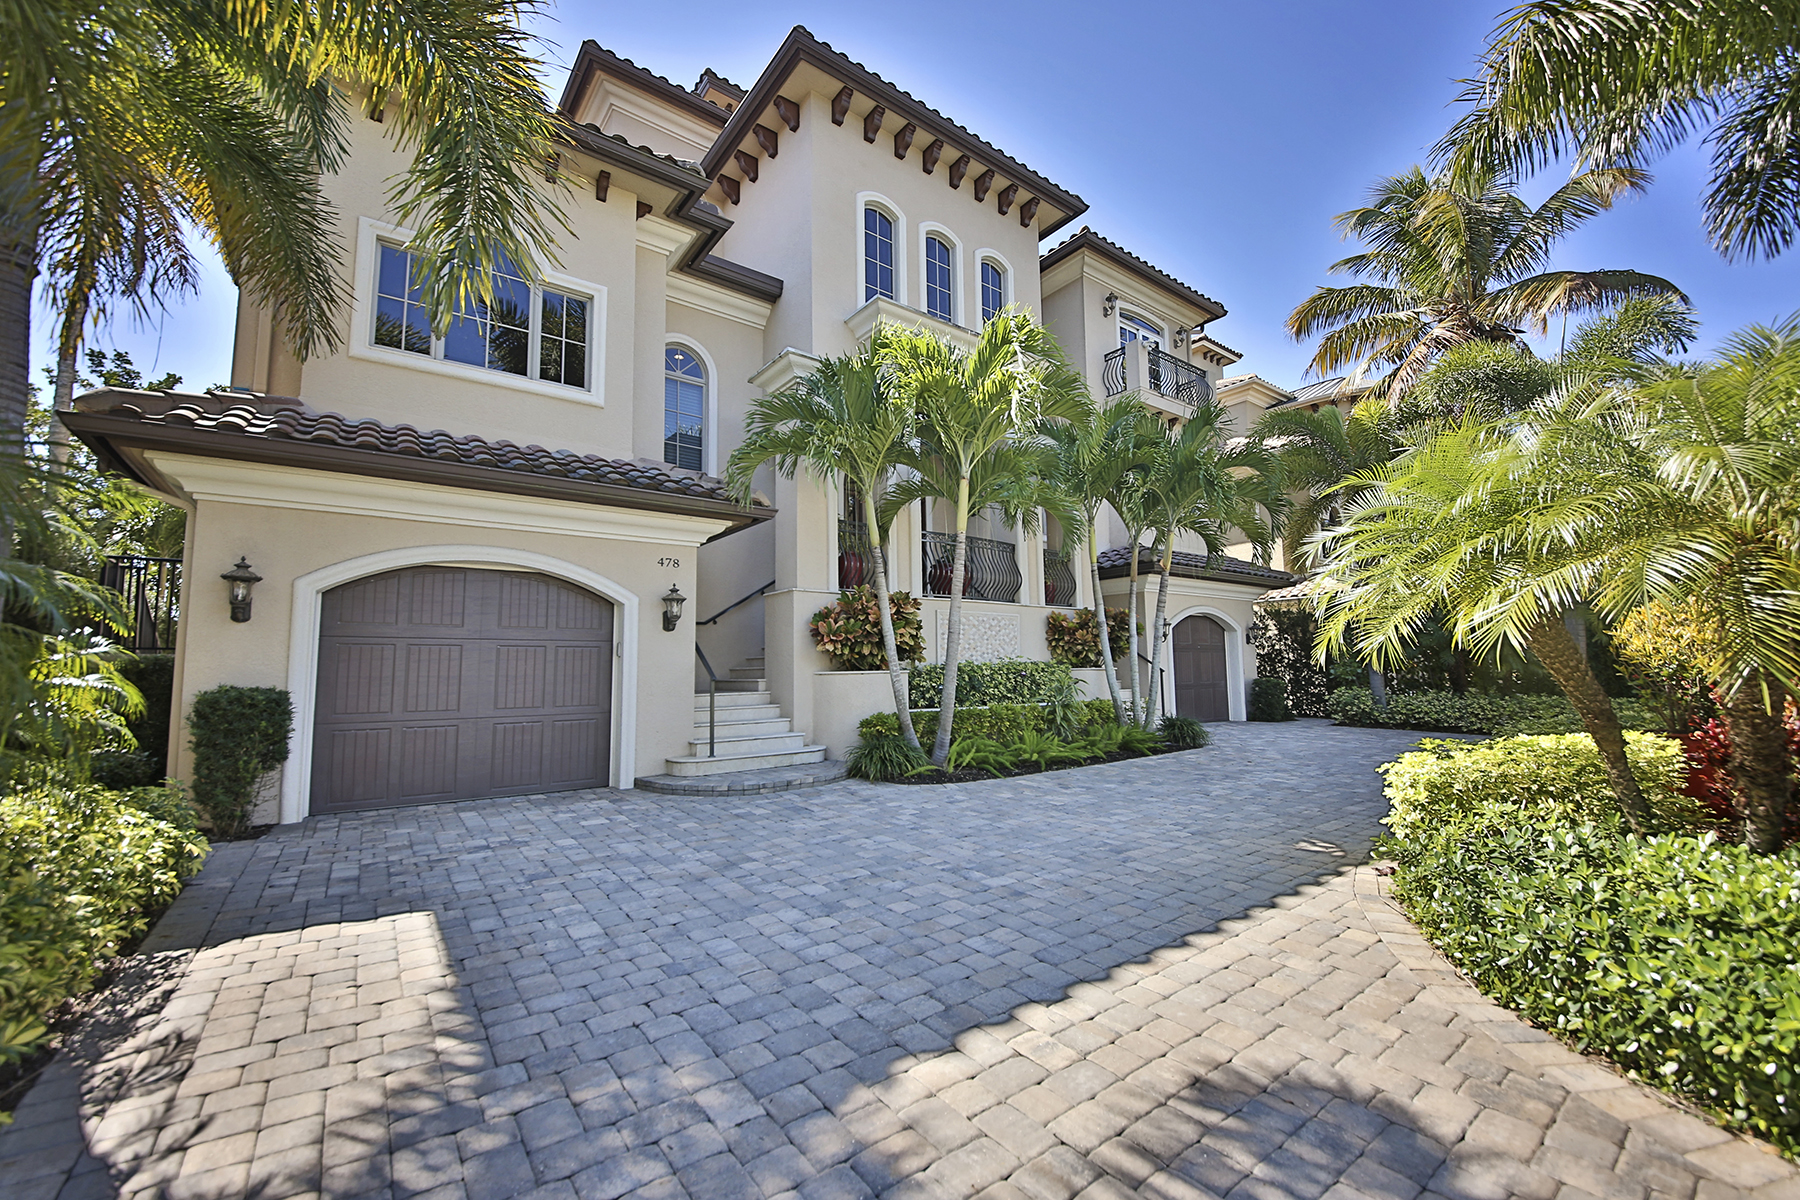 Additional photo for property listing at VANDERBILT BEACH - CONNERS 478  Willet Ave Naples, Florida 34108 United States